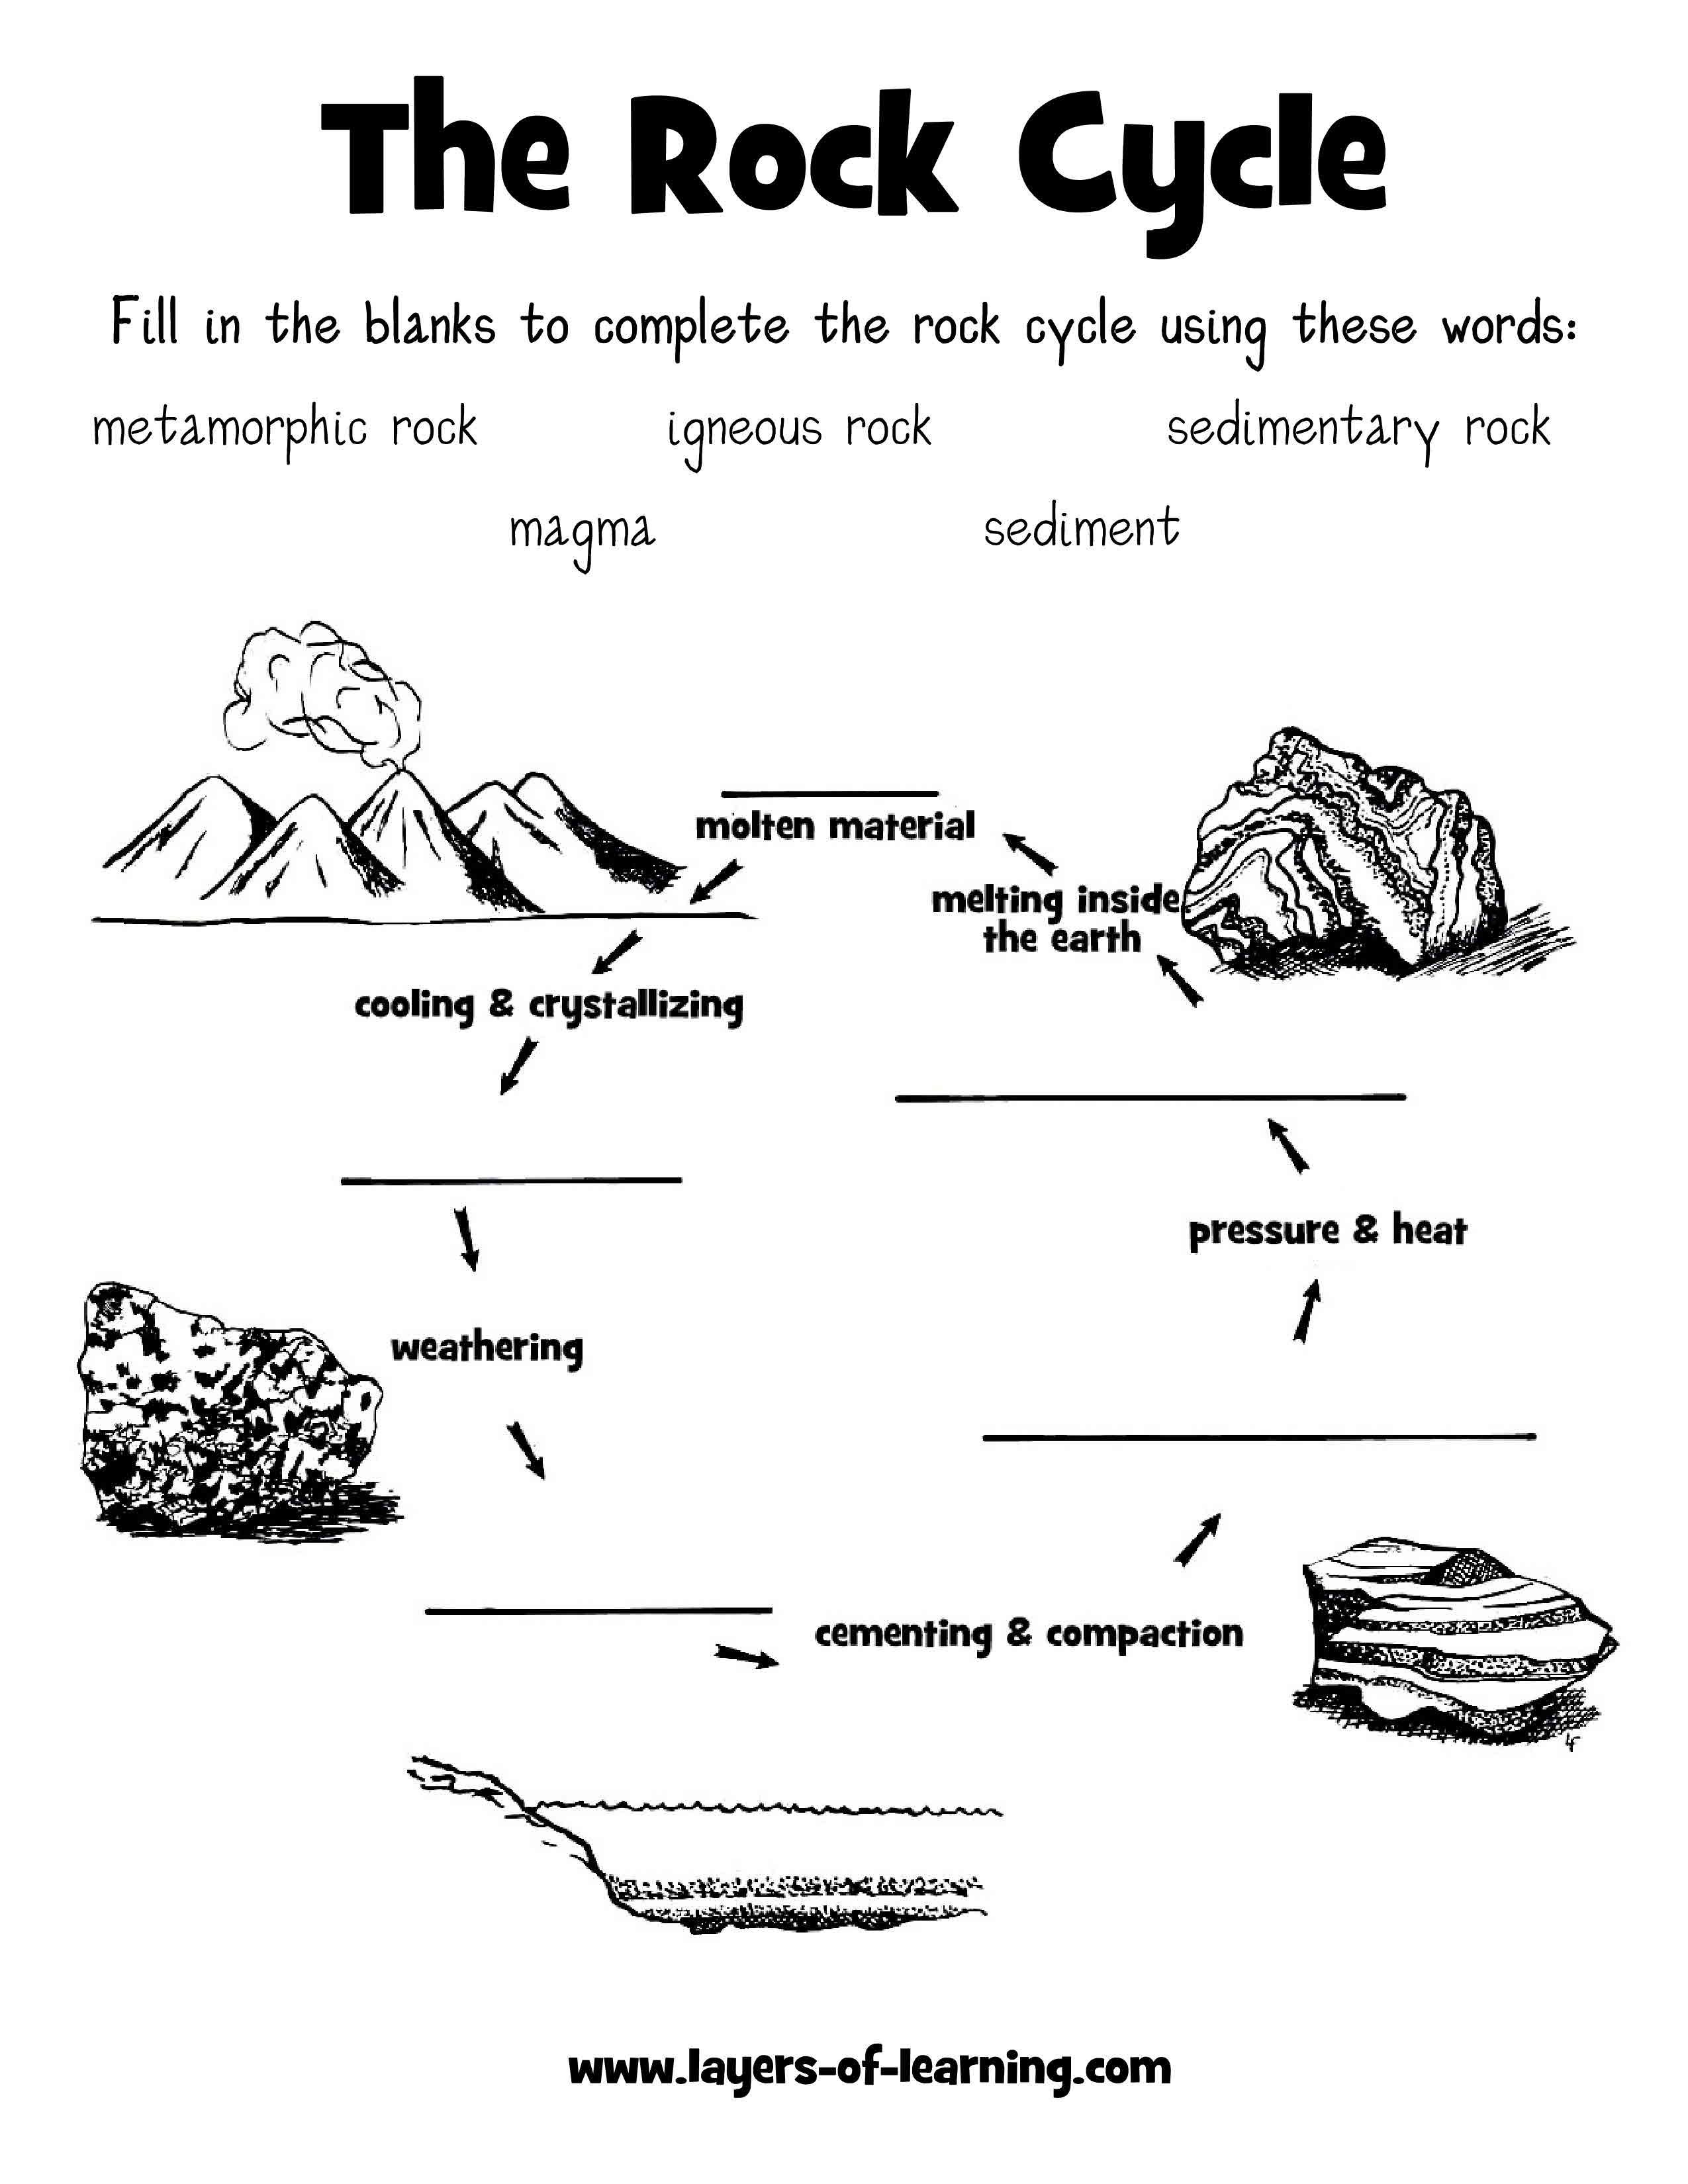 Rock Cycle Worksheet - Layers Of Learning | Science | Rock Cycle | Rock Cycle Worksheets Free Printable